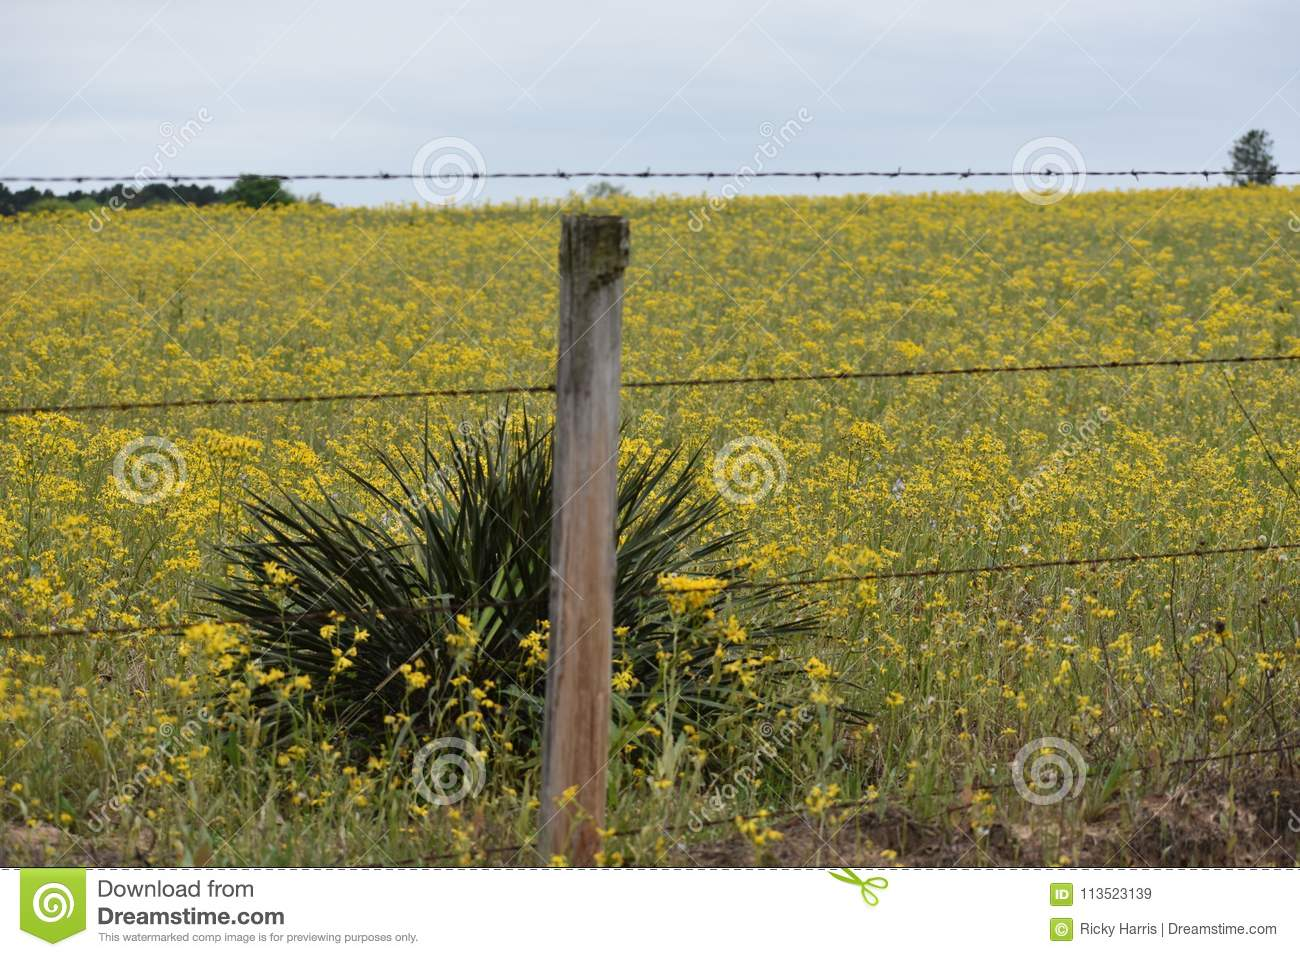 Field full of yellow flowers in east texas stock image image of field full of yellow flowers in east texas mightylinksfo